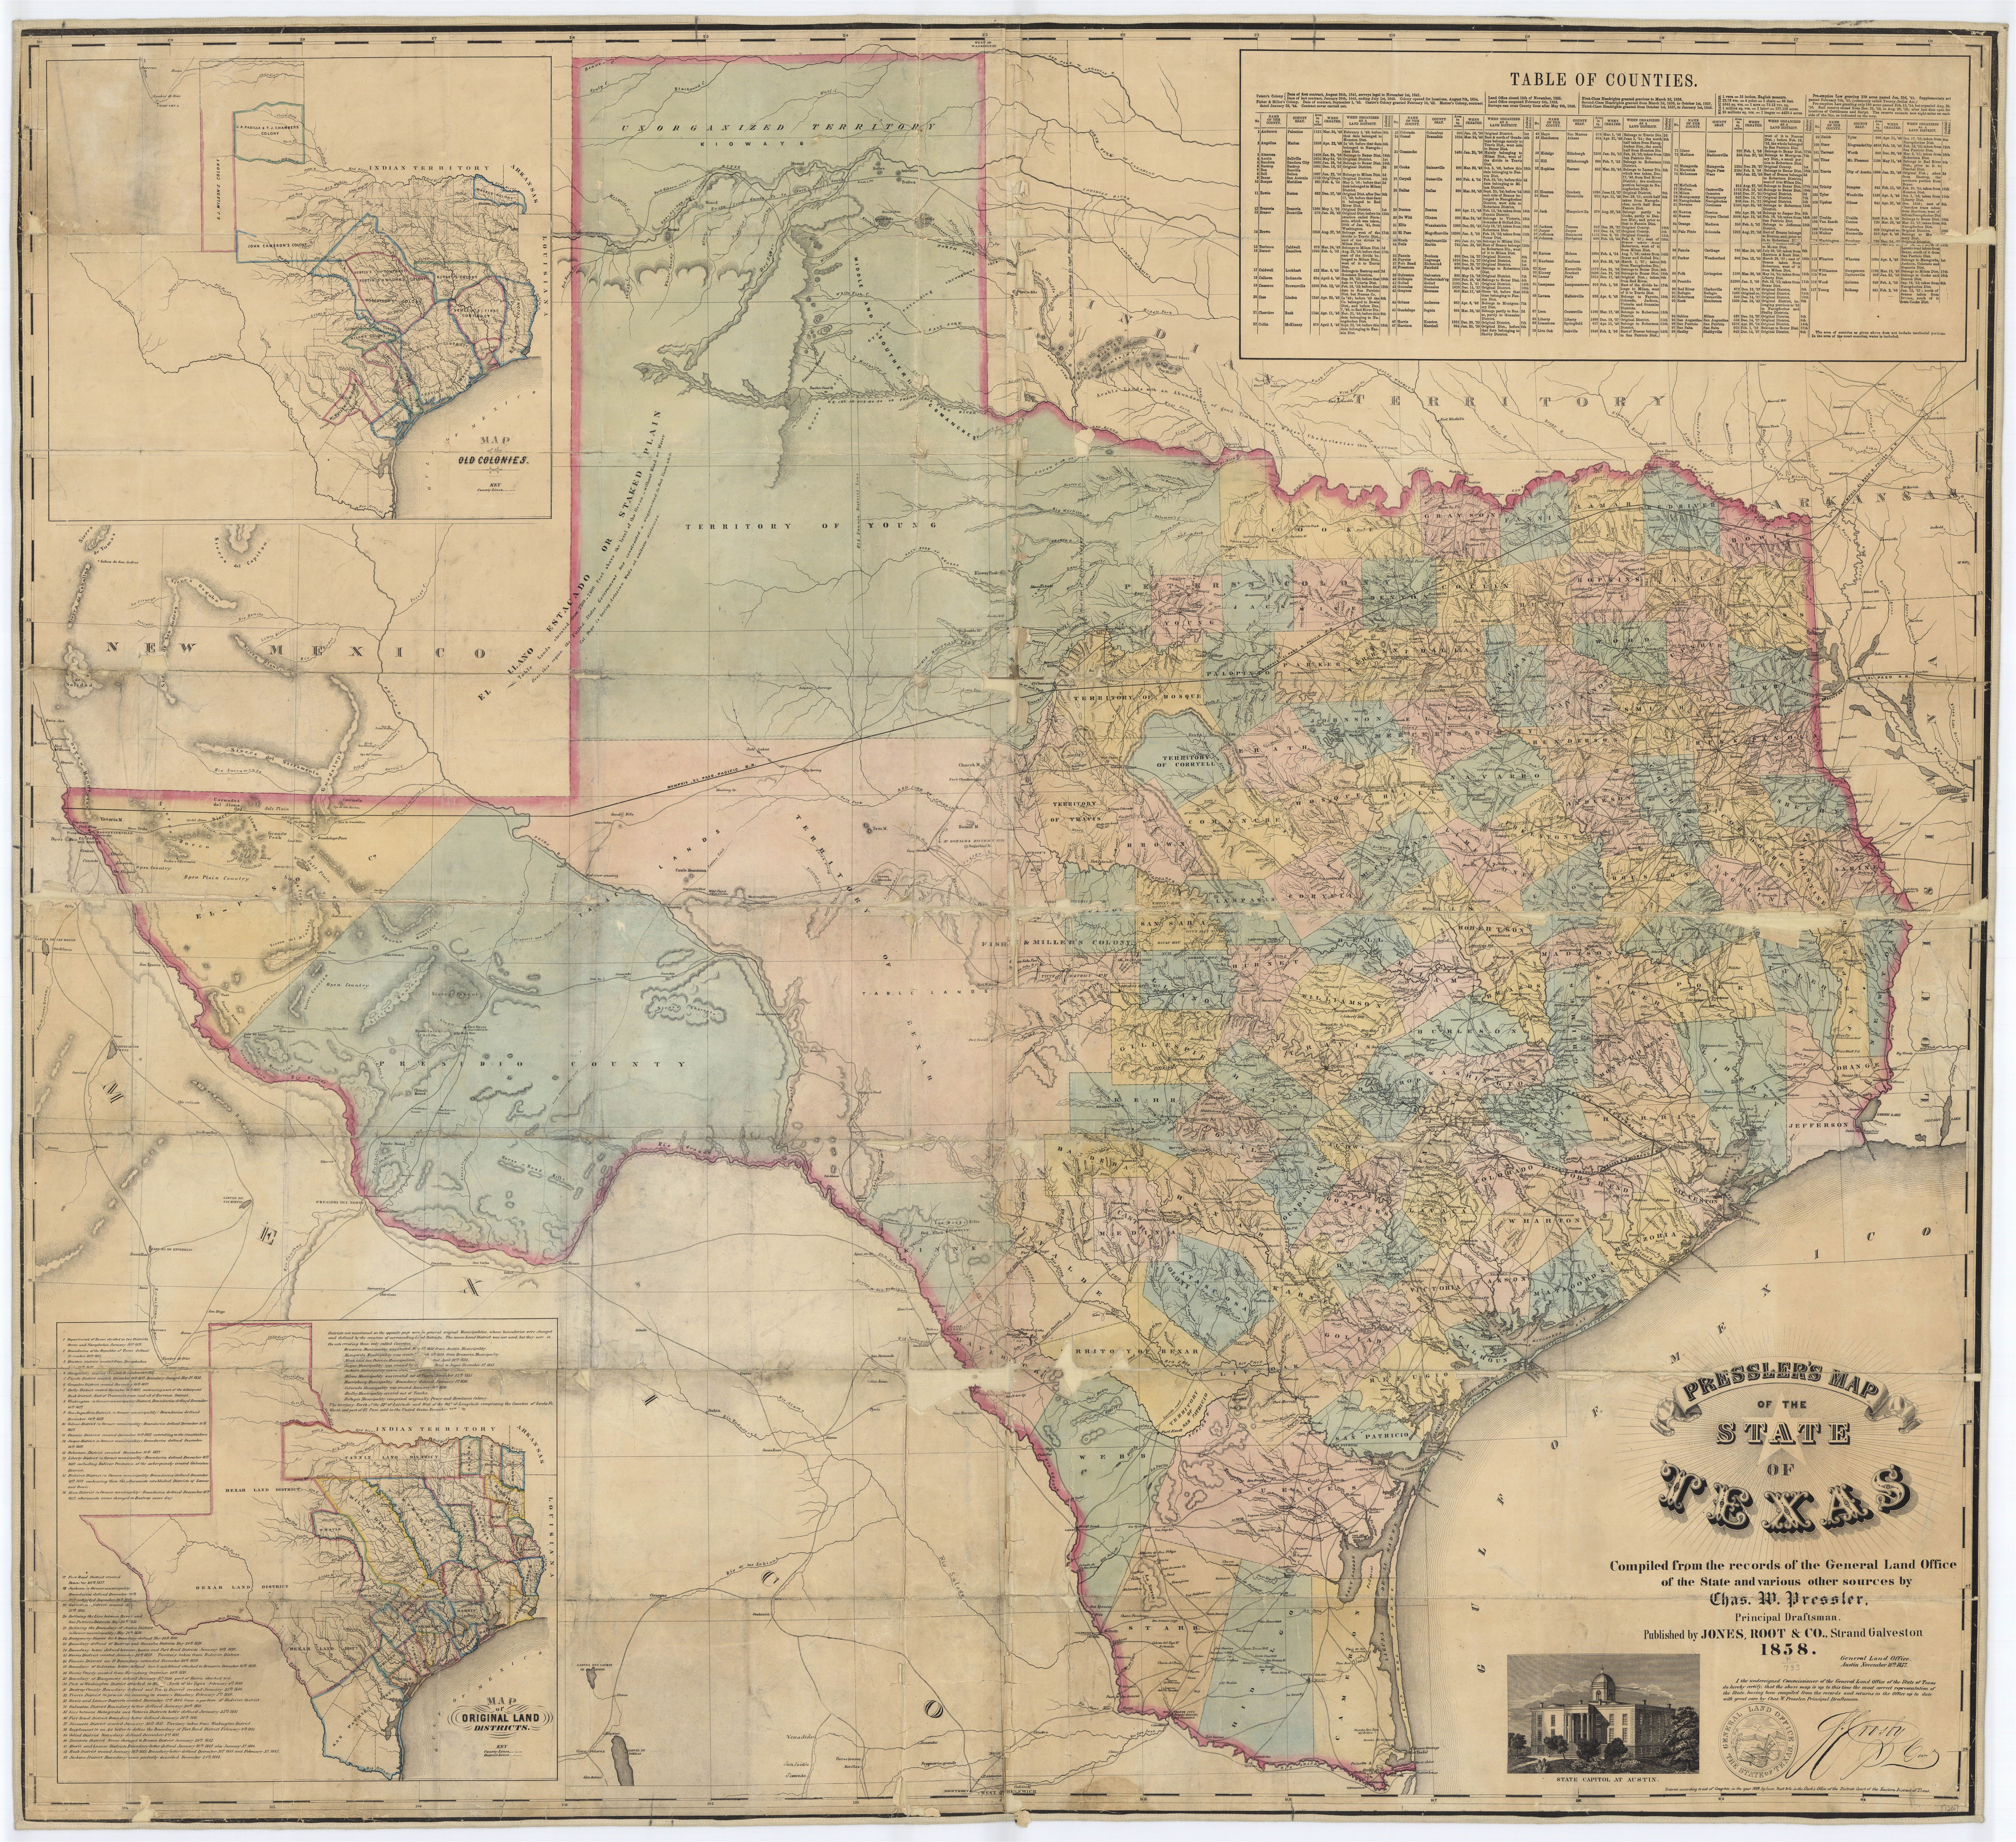 Map Of Texas 1836.1836 Map Of Texas Vintage Texas Map A R T In 2019 Vintage Maps Texas